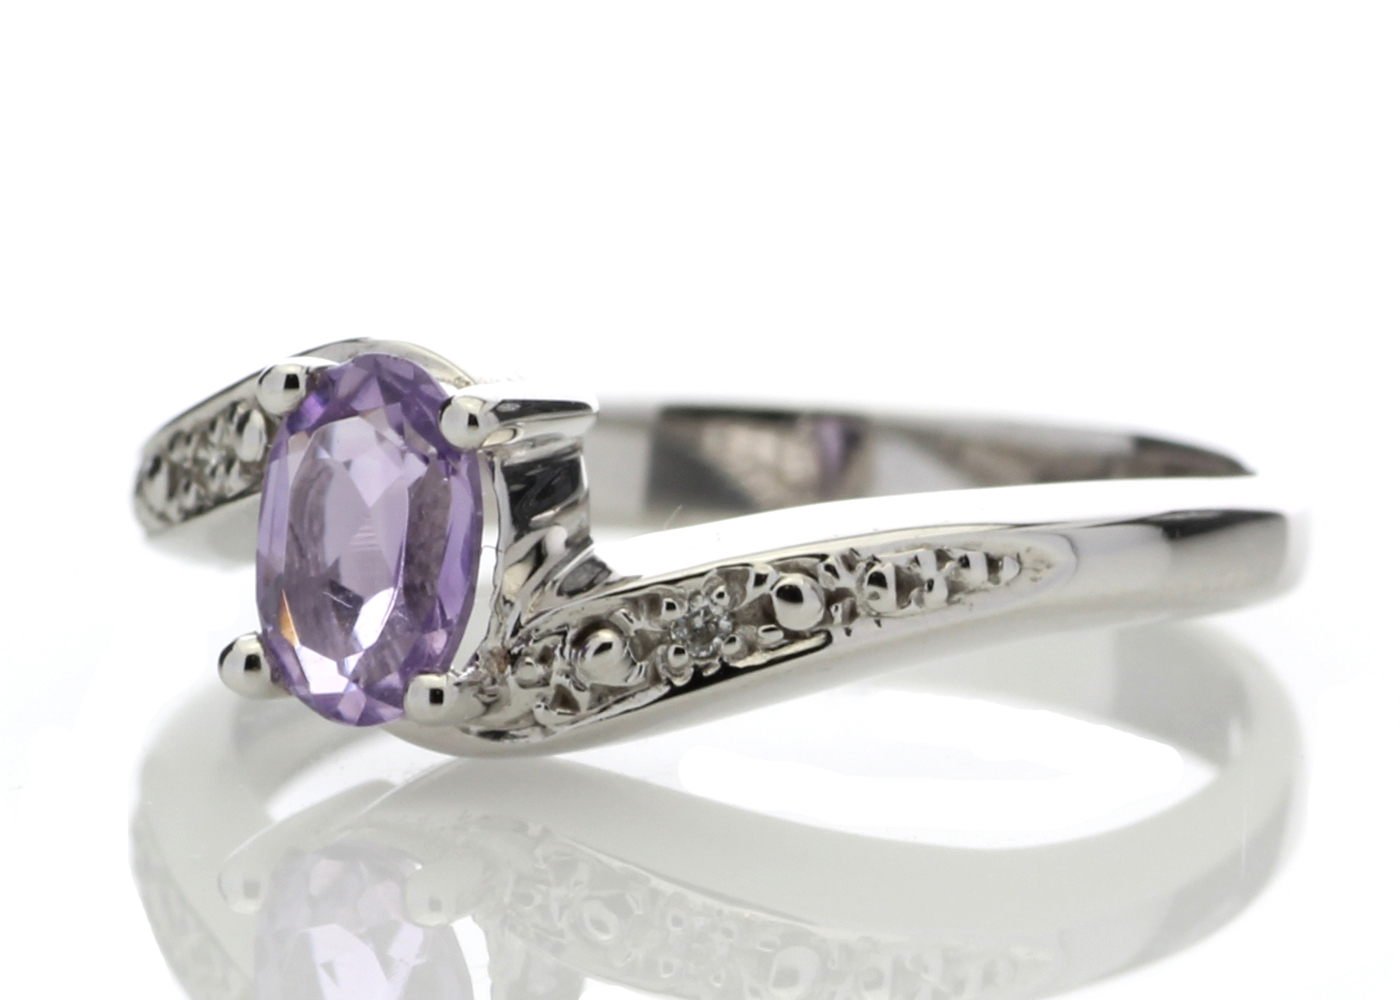 9ct White Gold Amethyst Diamond Ring 0.01 Carats - Image 2 of 4